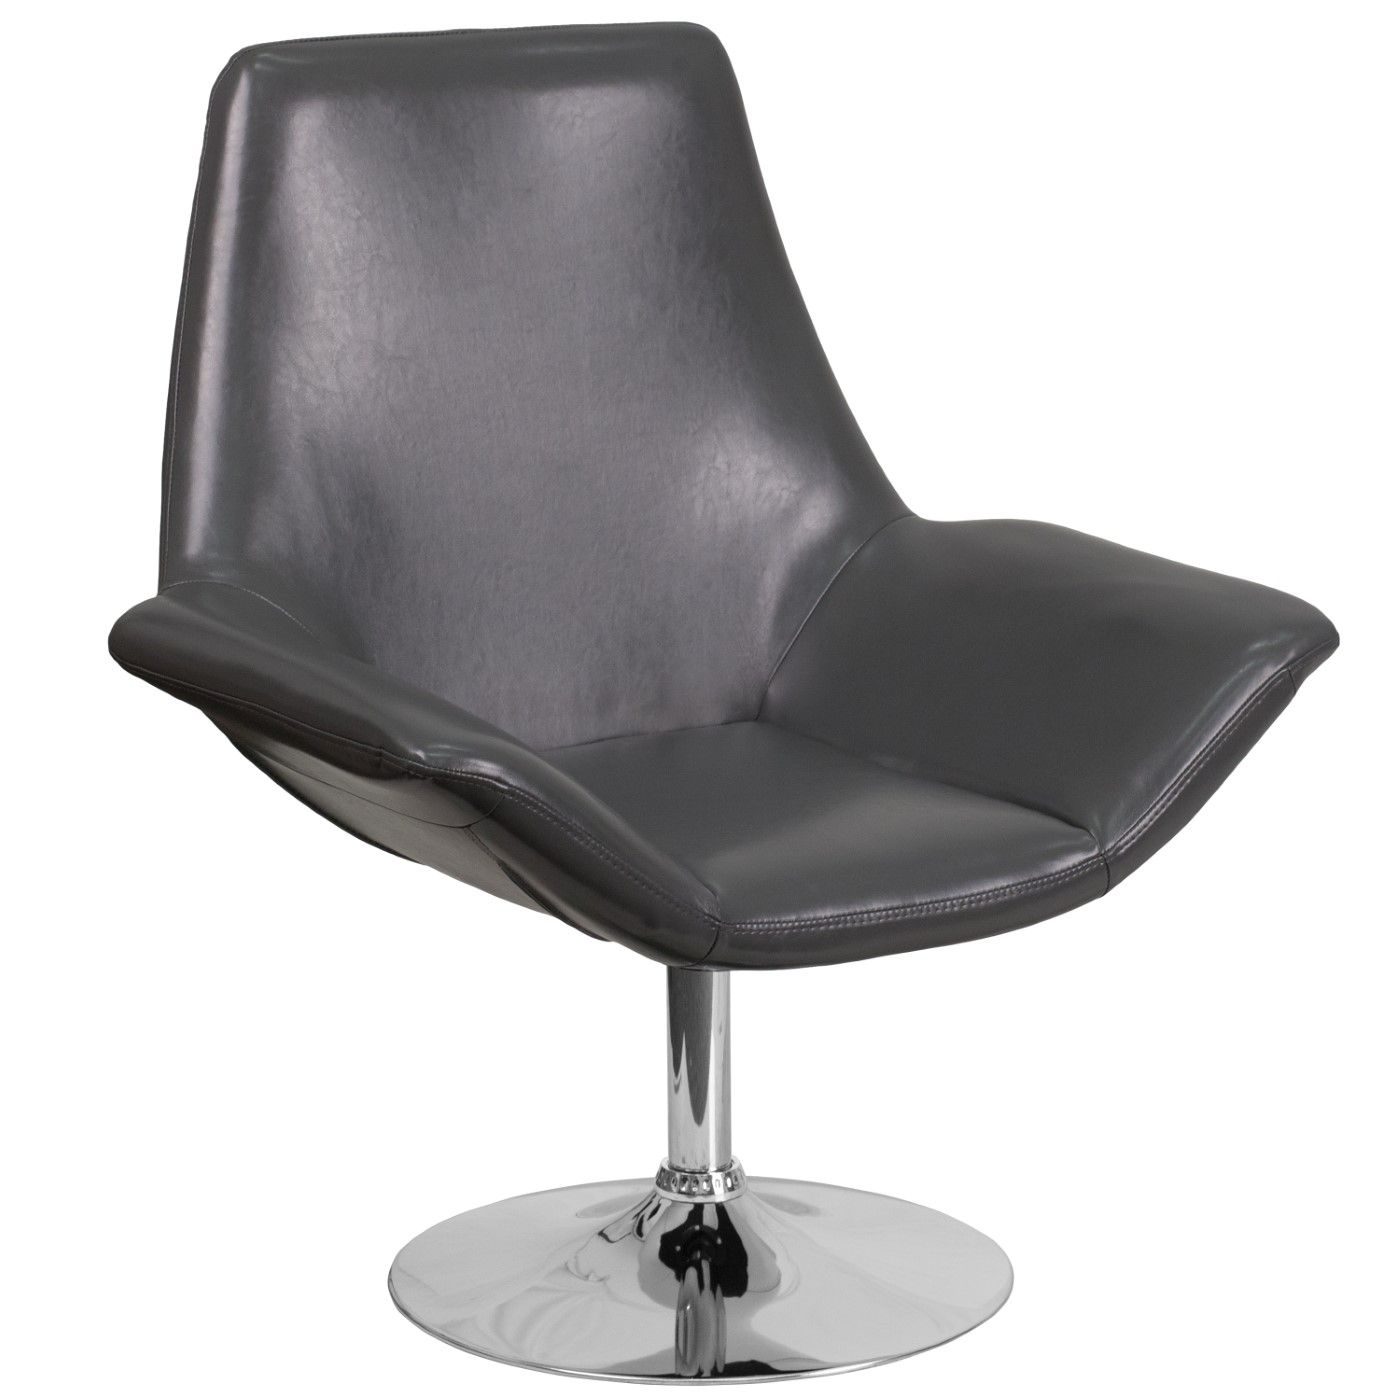 TOUGH ENOUGH Sabrina Series Gray LeatherSoft Side Reception Chair